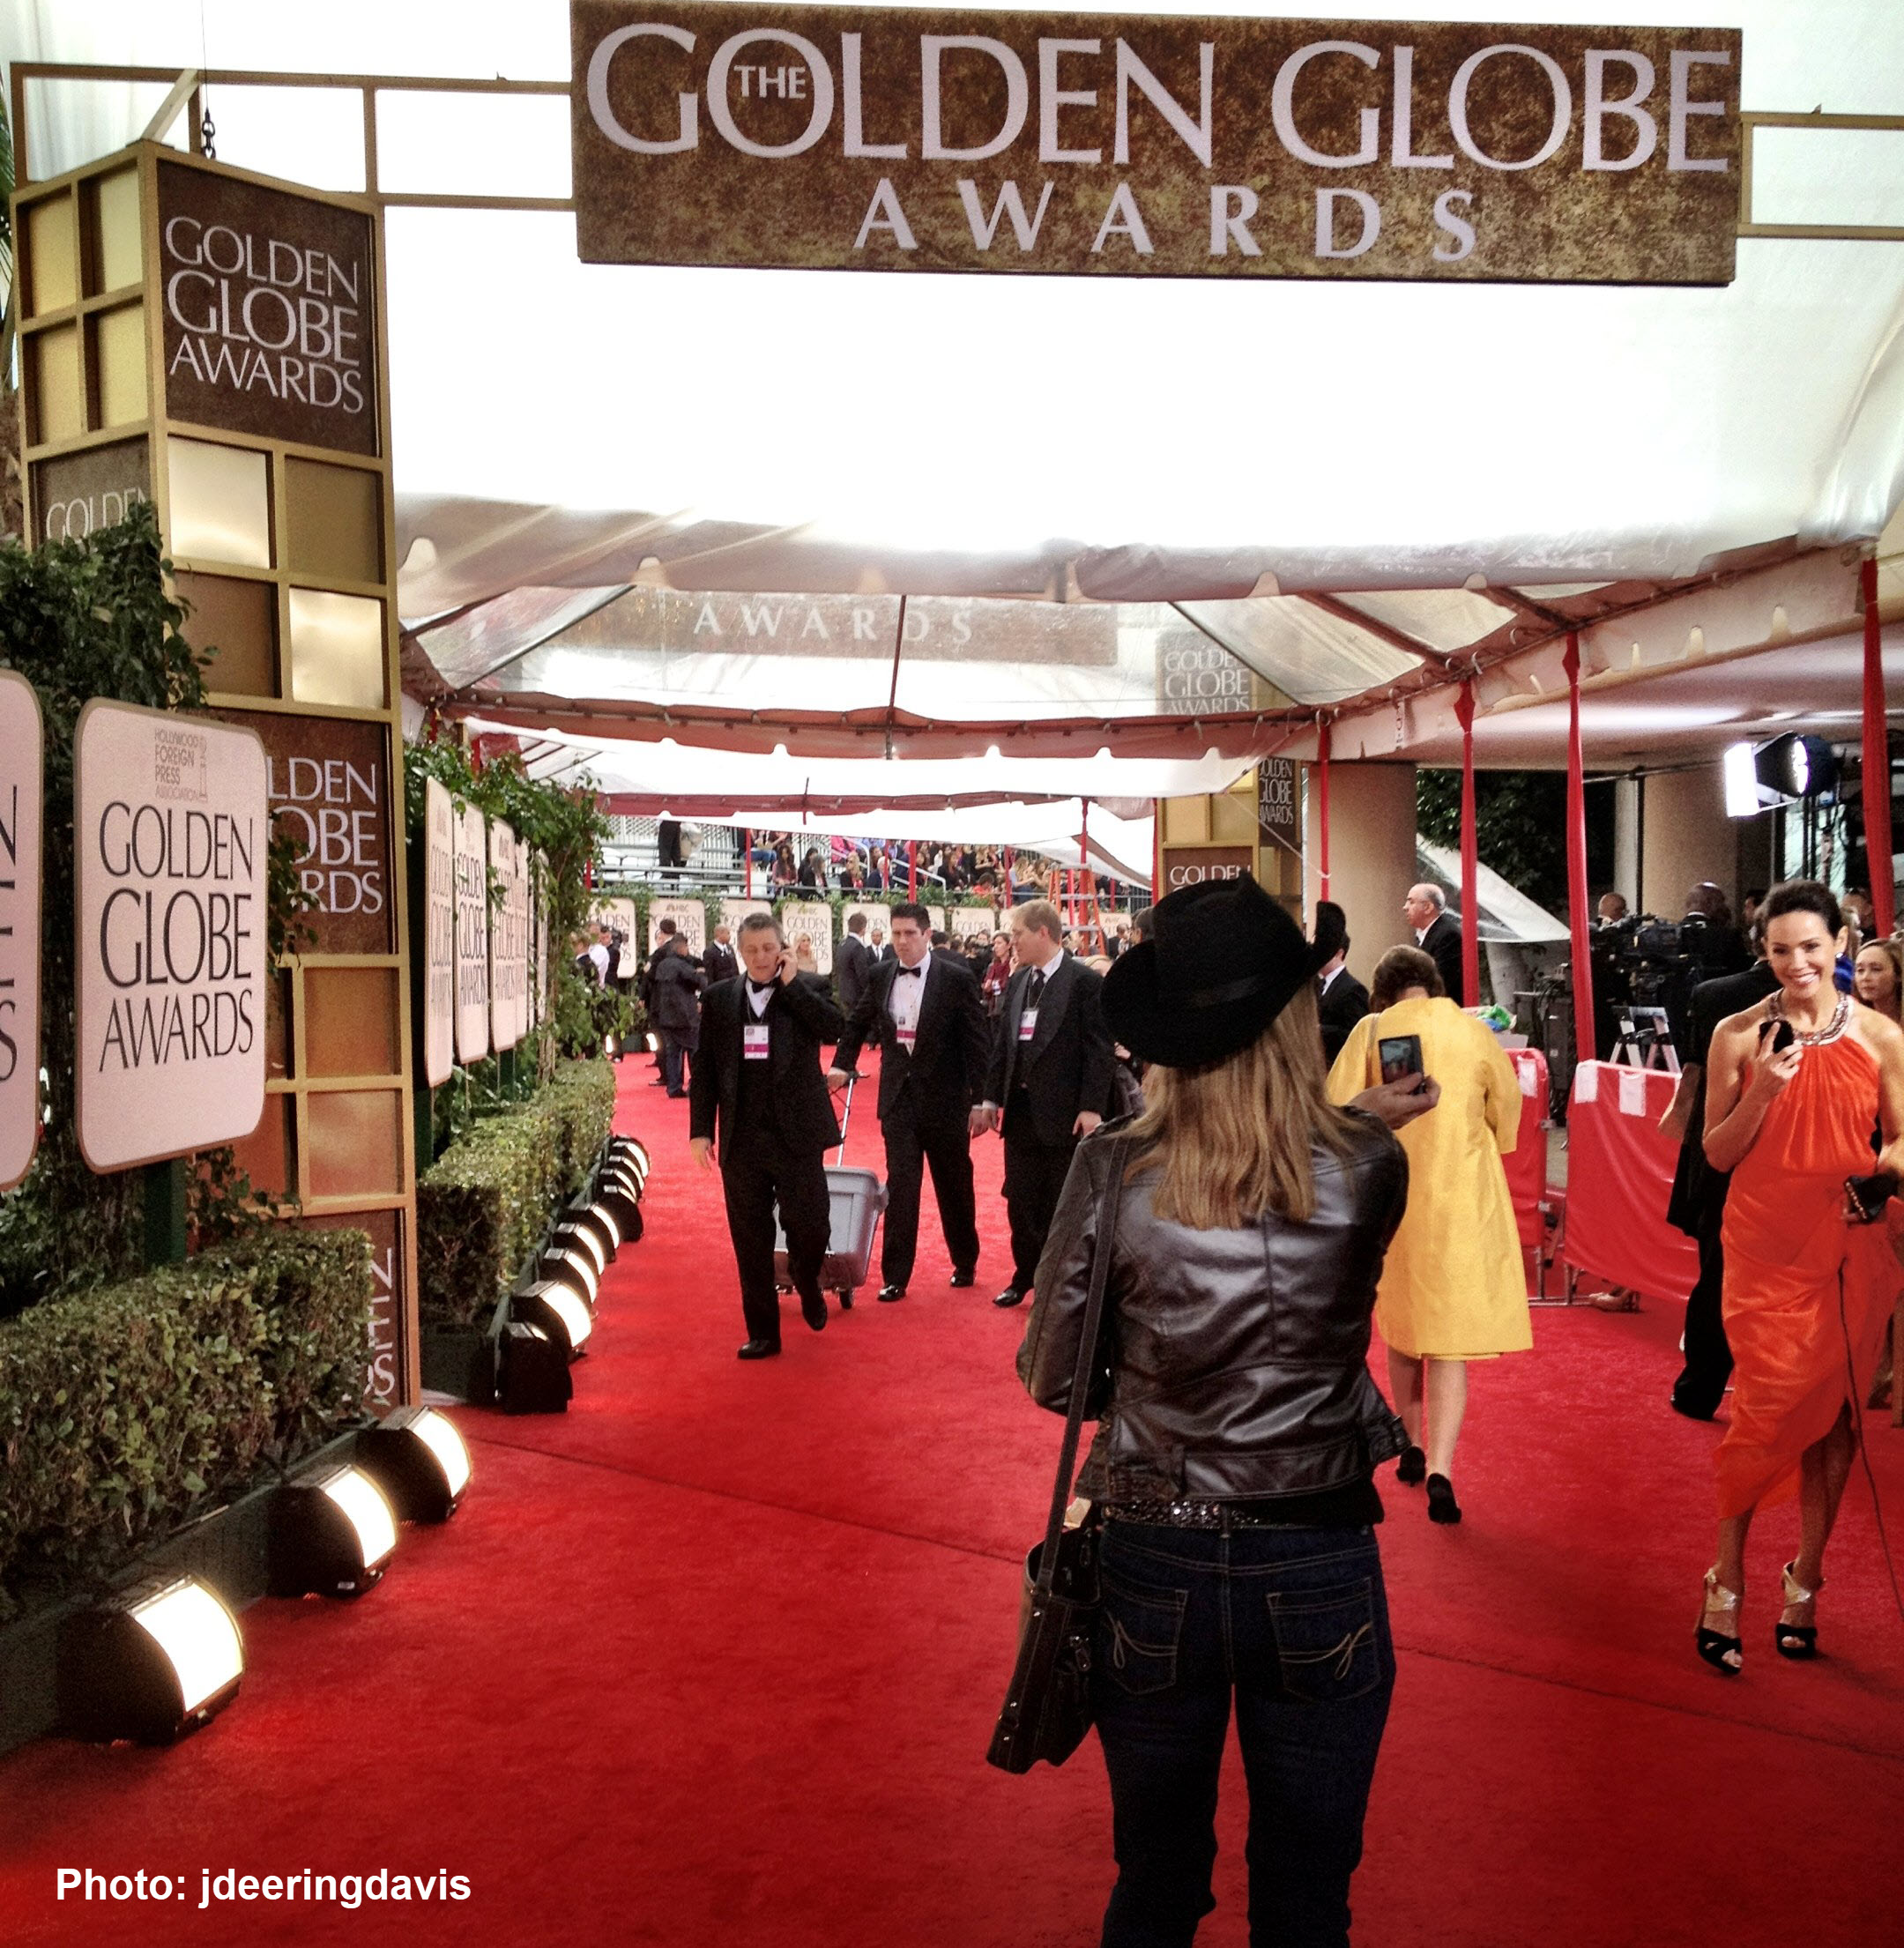 IC - GOLDEN GLOBES - IC UCLA 469.jpg